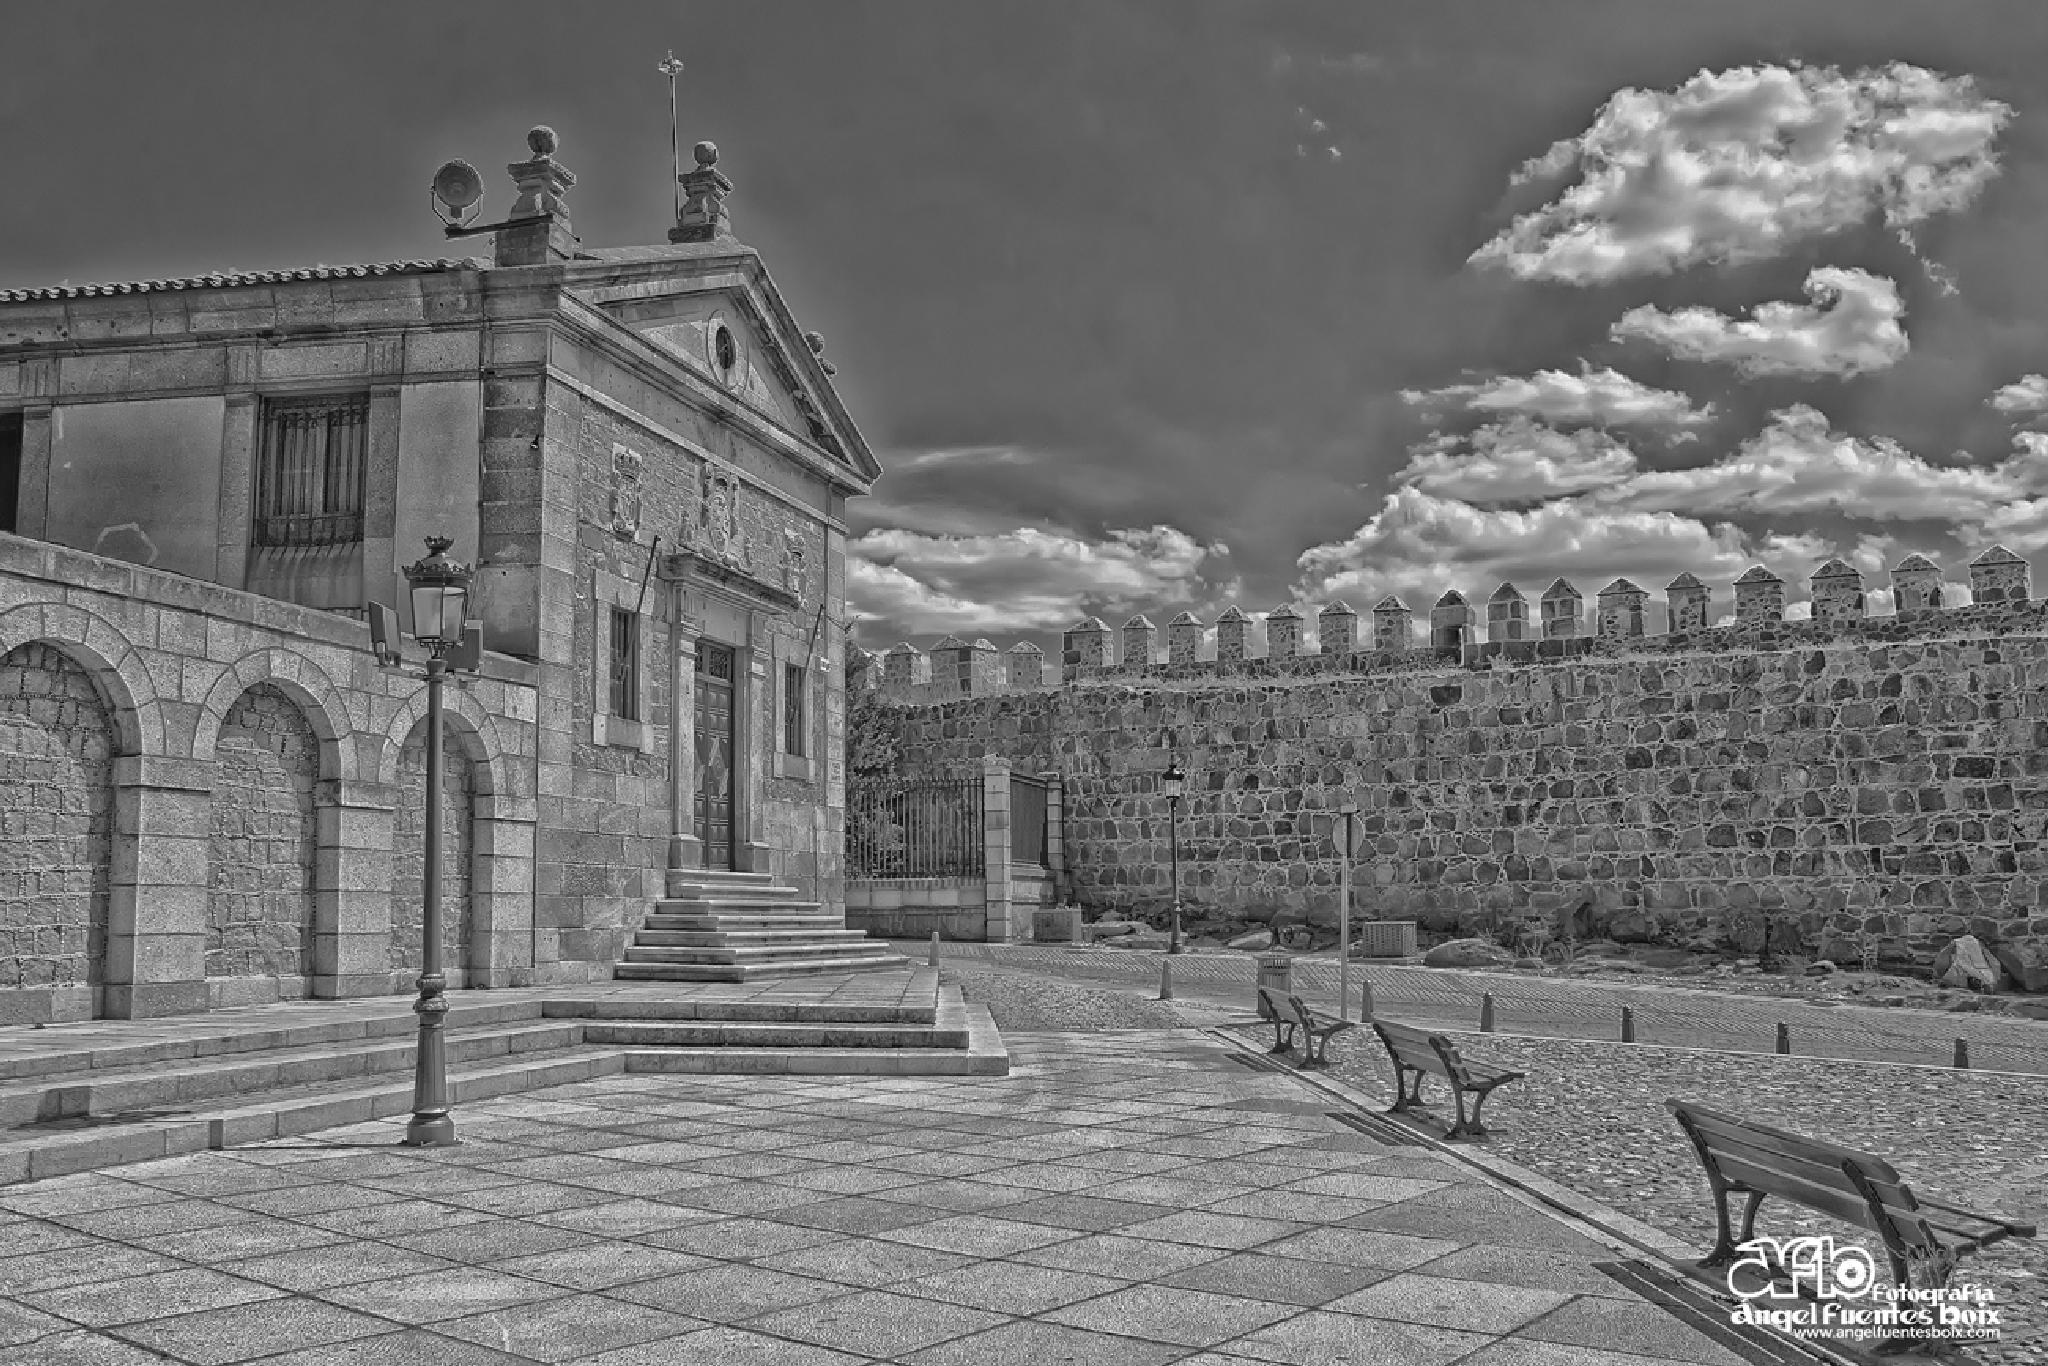 Avila by angel.fuentesboixFotografia